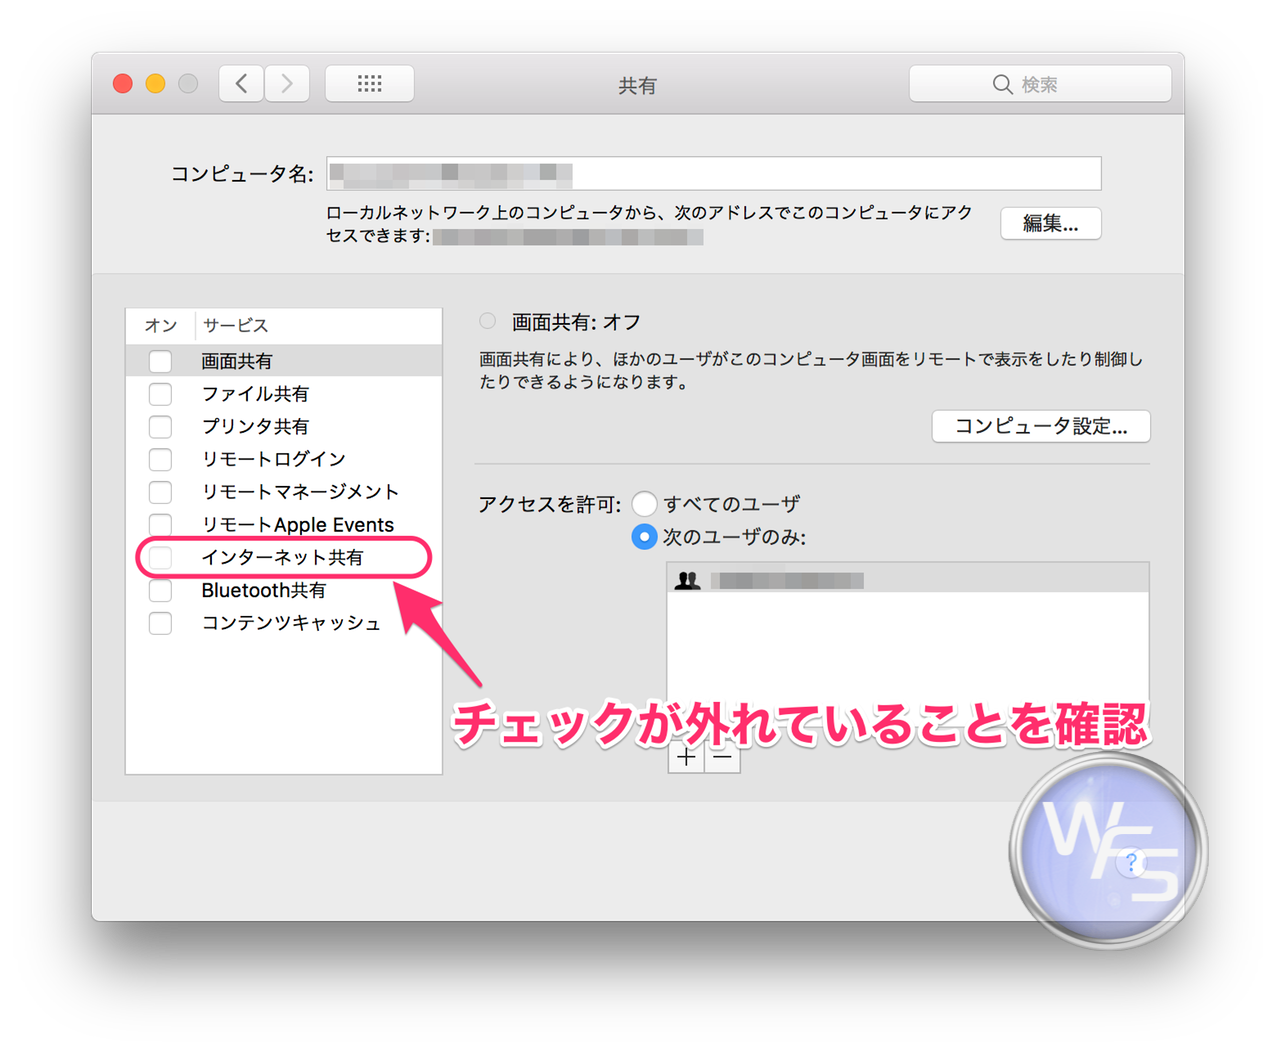 Dropbox xampp mamp mac setting01